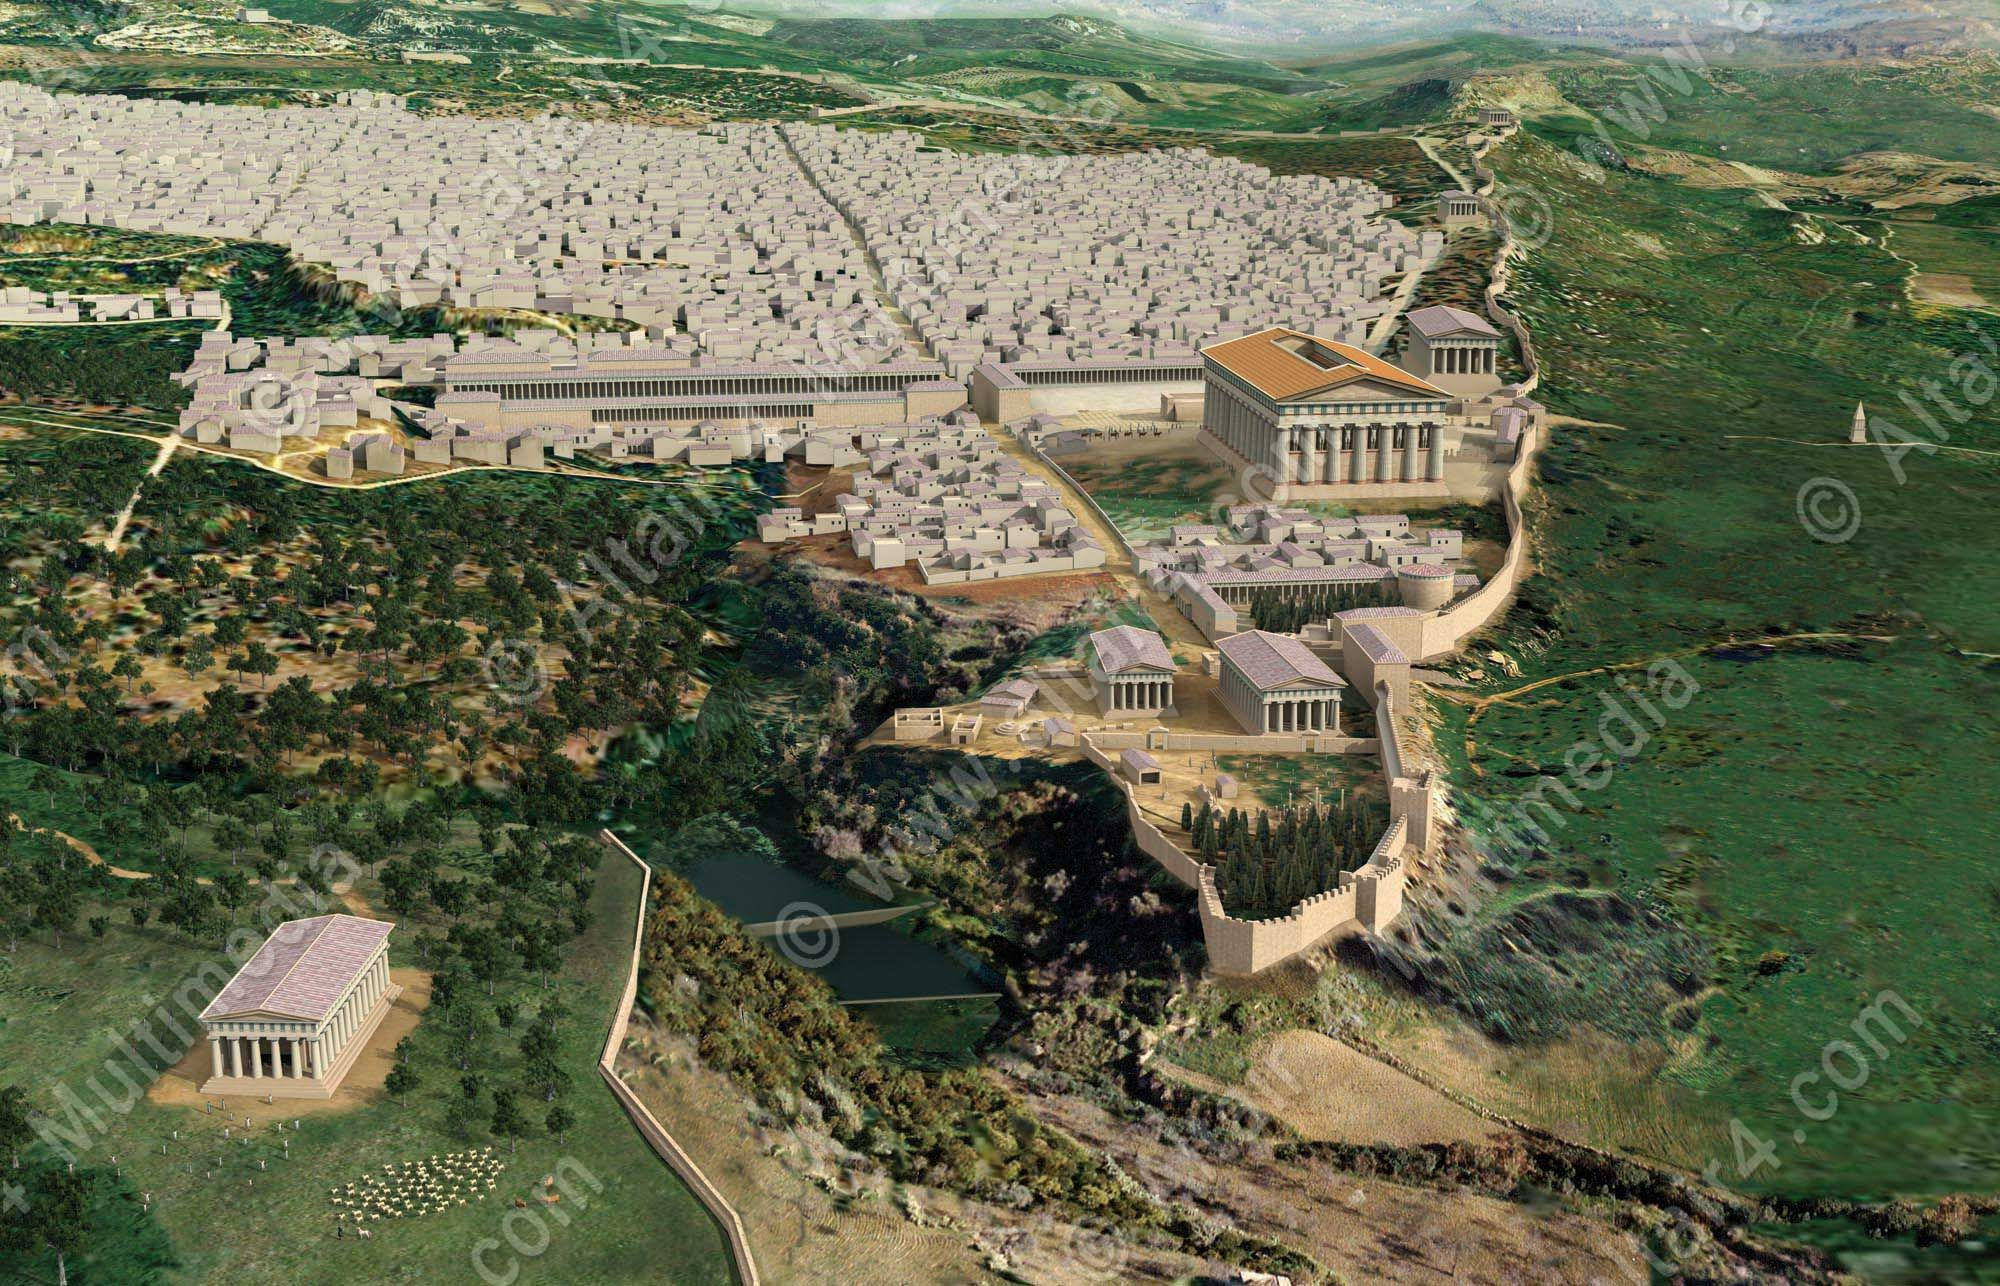 3D Reconstruction of the city of Agrigento by Altair 4 Multimedia